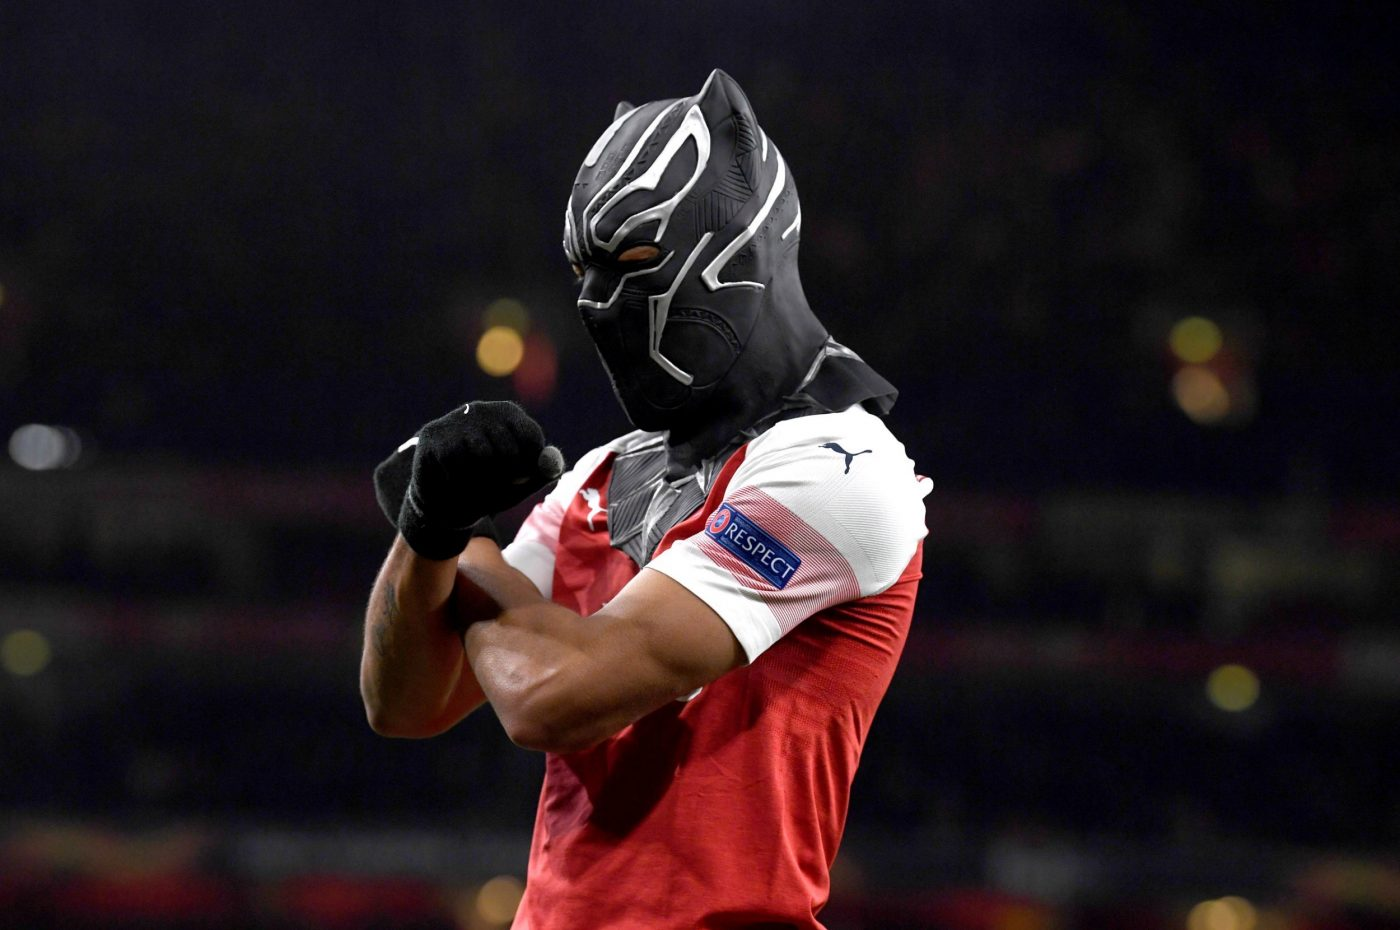 aubameyang-celebration-black-panther-footpack-2019-